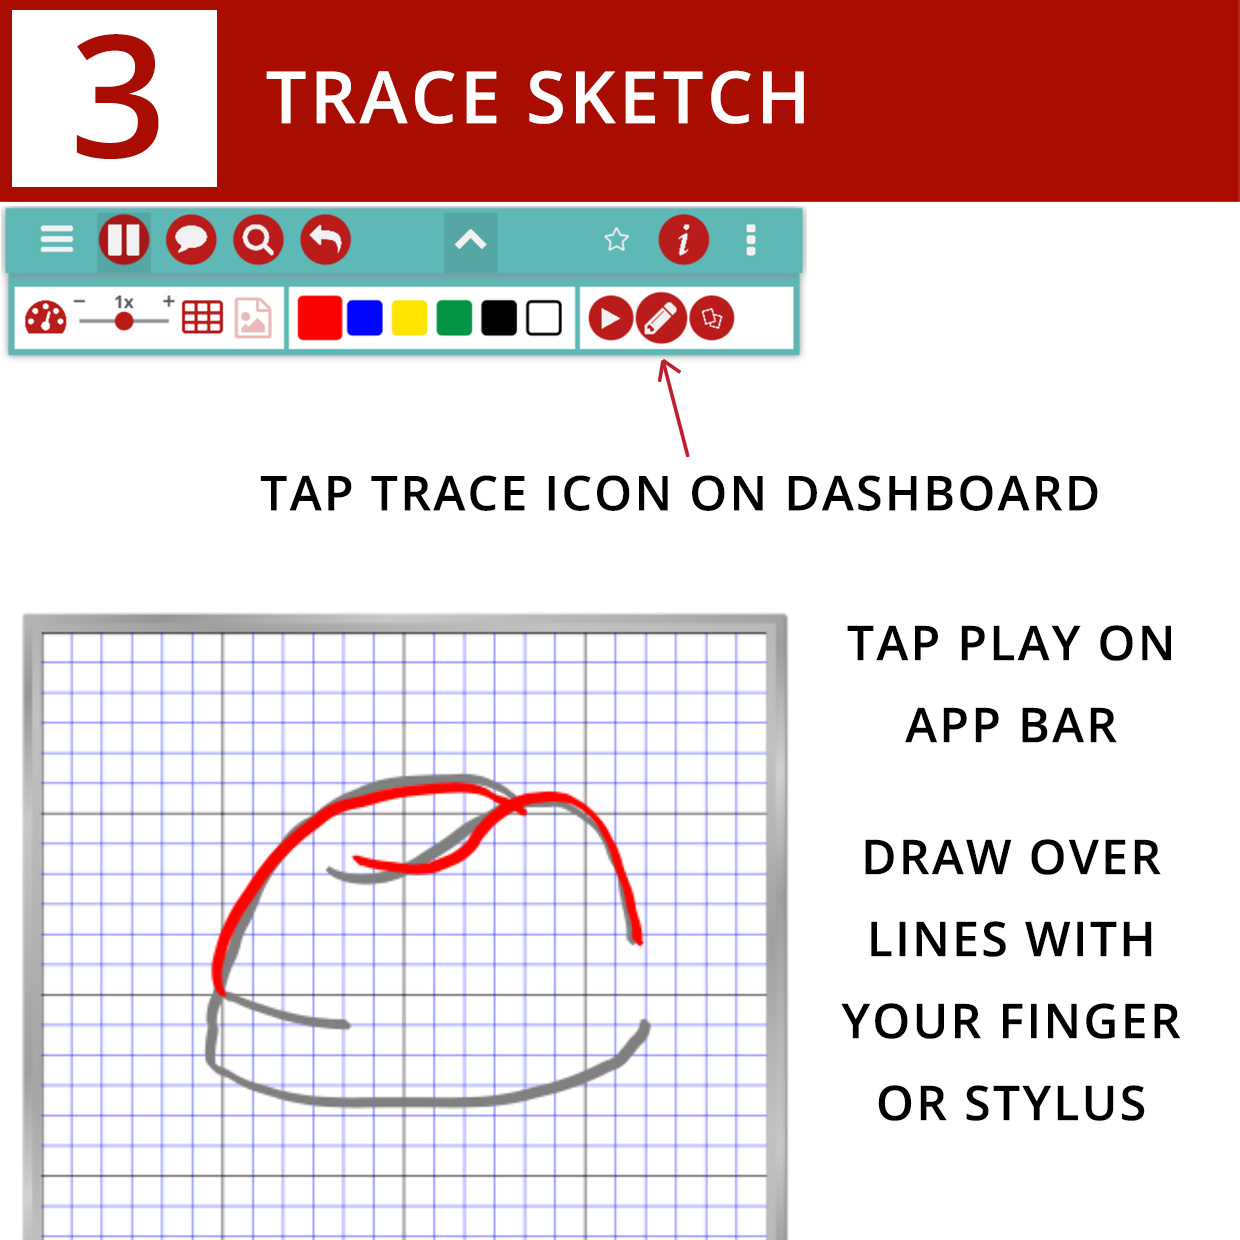 Frame3-Trace